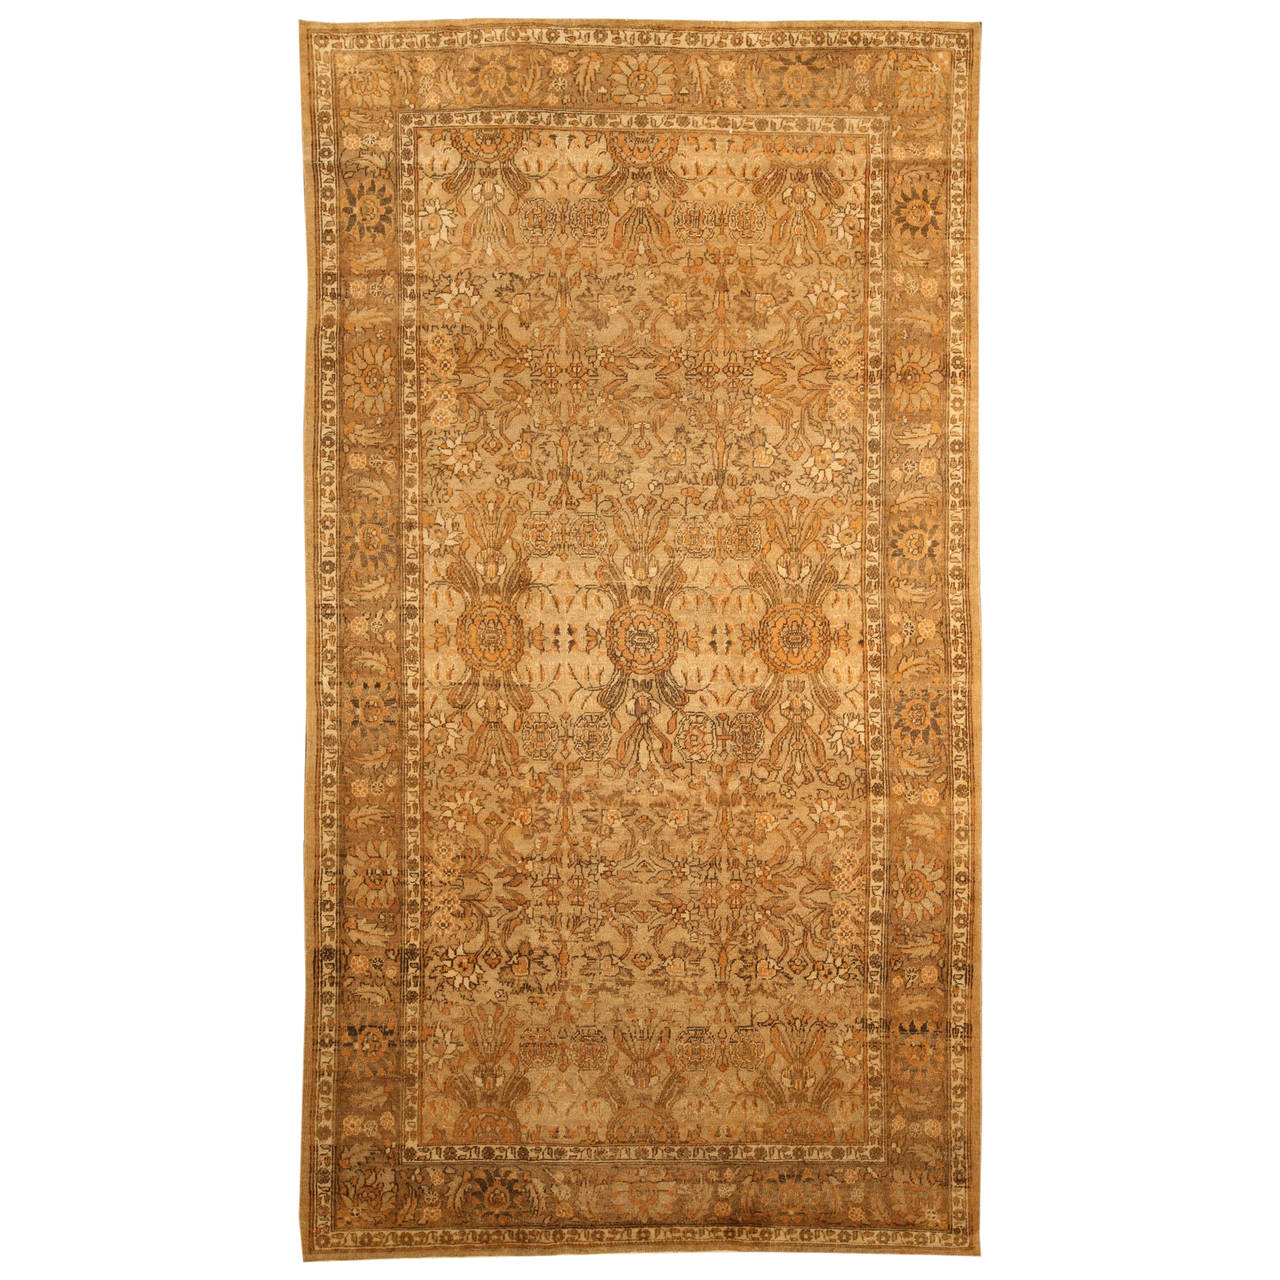 Antique Indian Amritsar Rug For Sale At 1stdibs